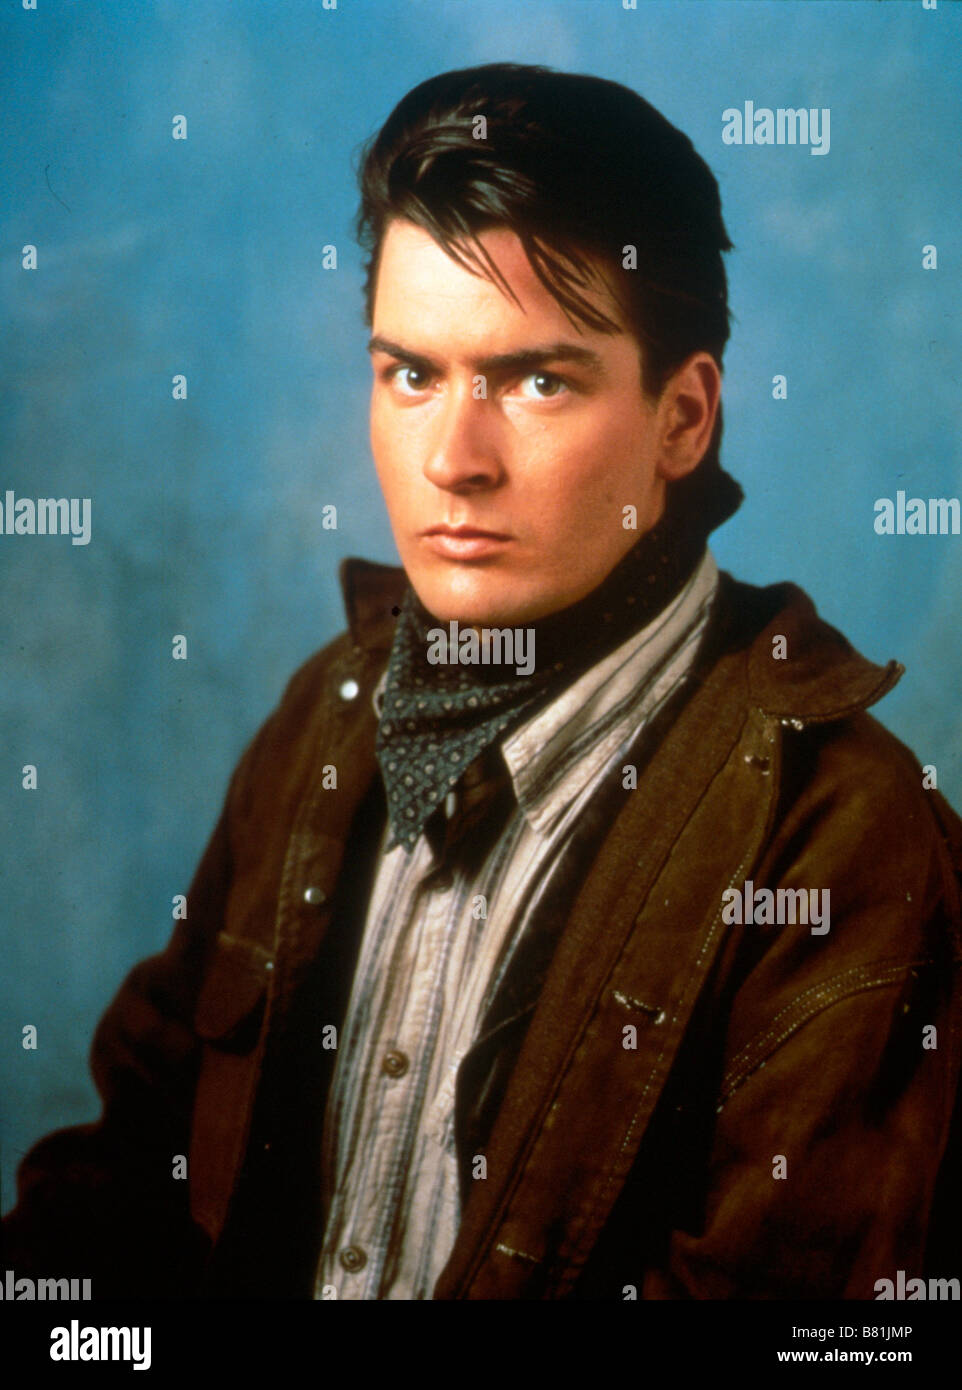 Young guns 1988 charlie sheen stock photos young guns 1988 charlie young guns young guns year 1988 usa charlie sheen director christopher cain stock thecheapjerseys Images